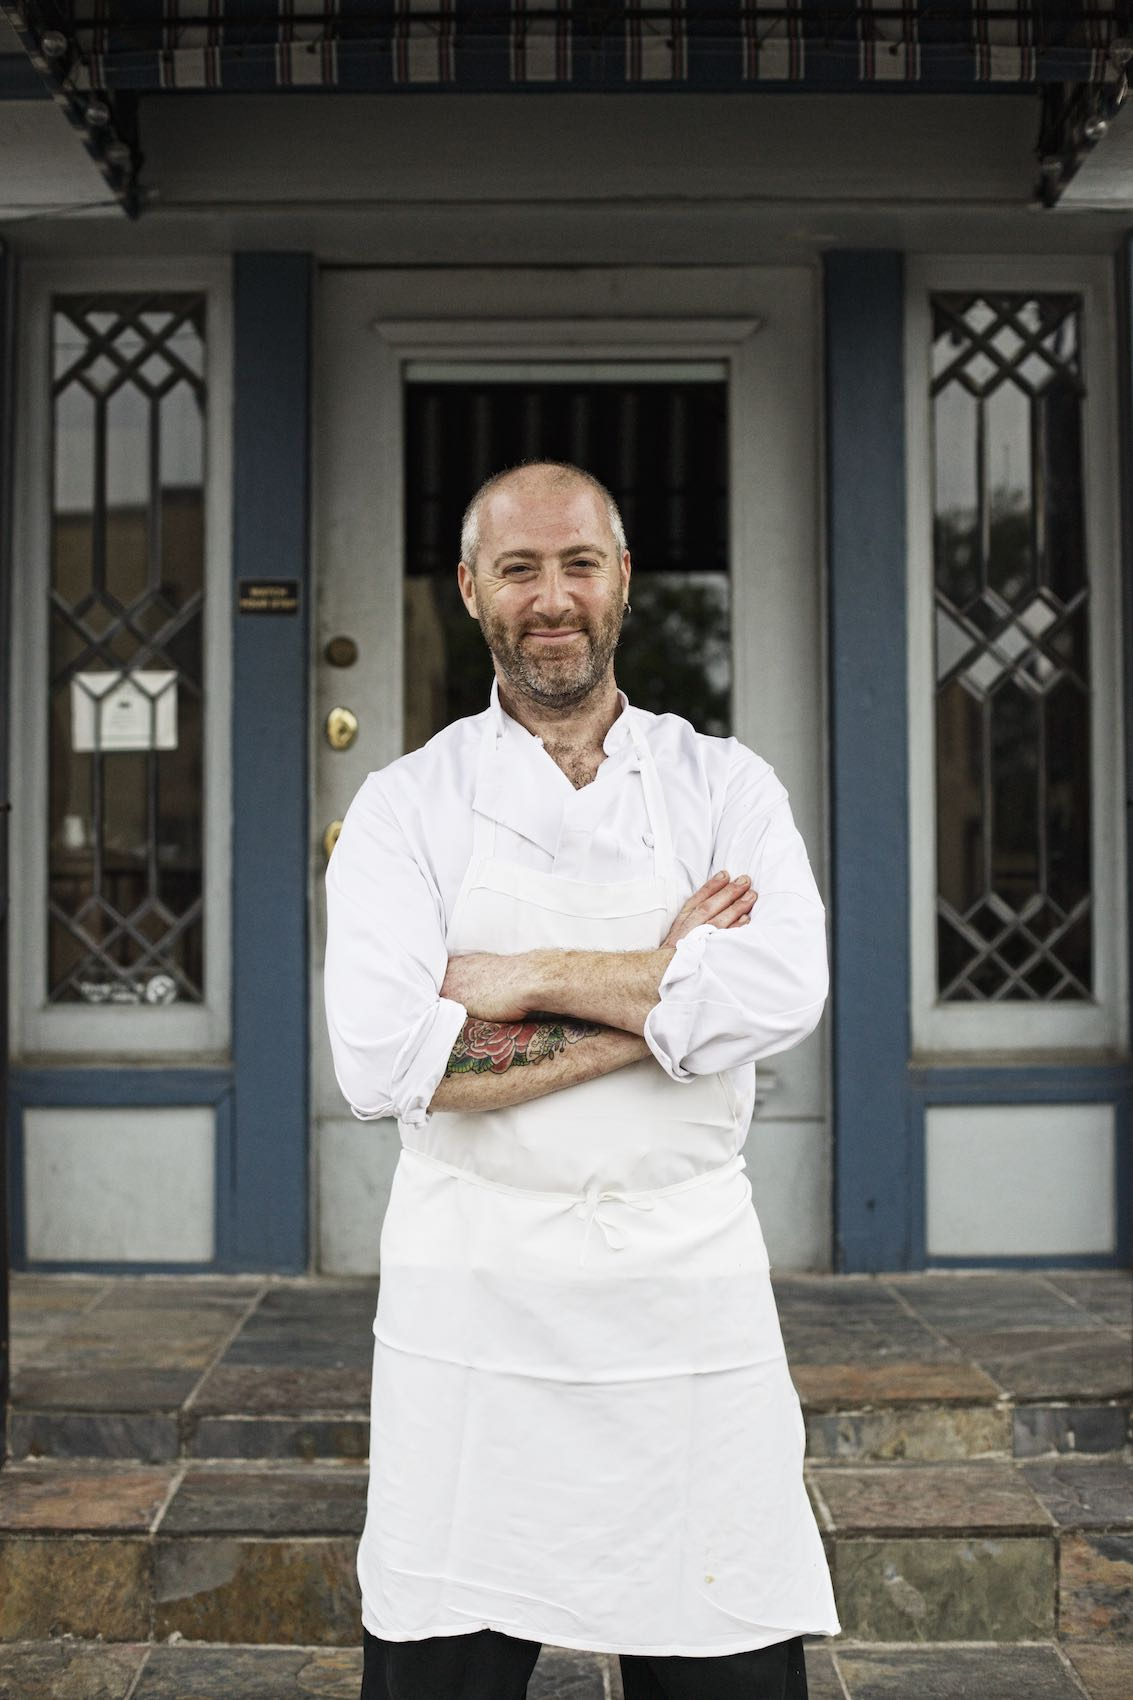 Jody Horton Photography - Chef in uniform proudly standing outside storefront.